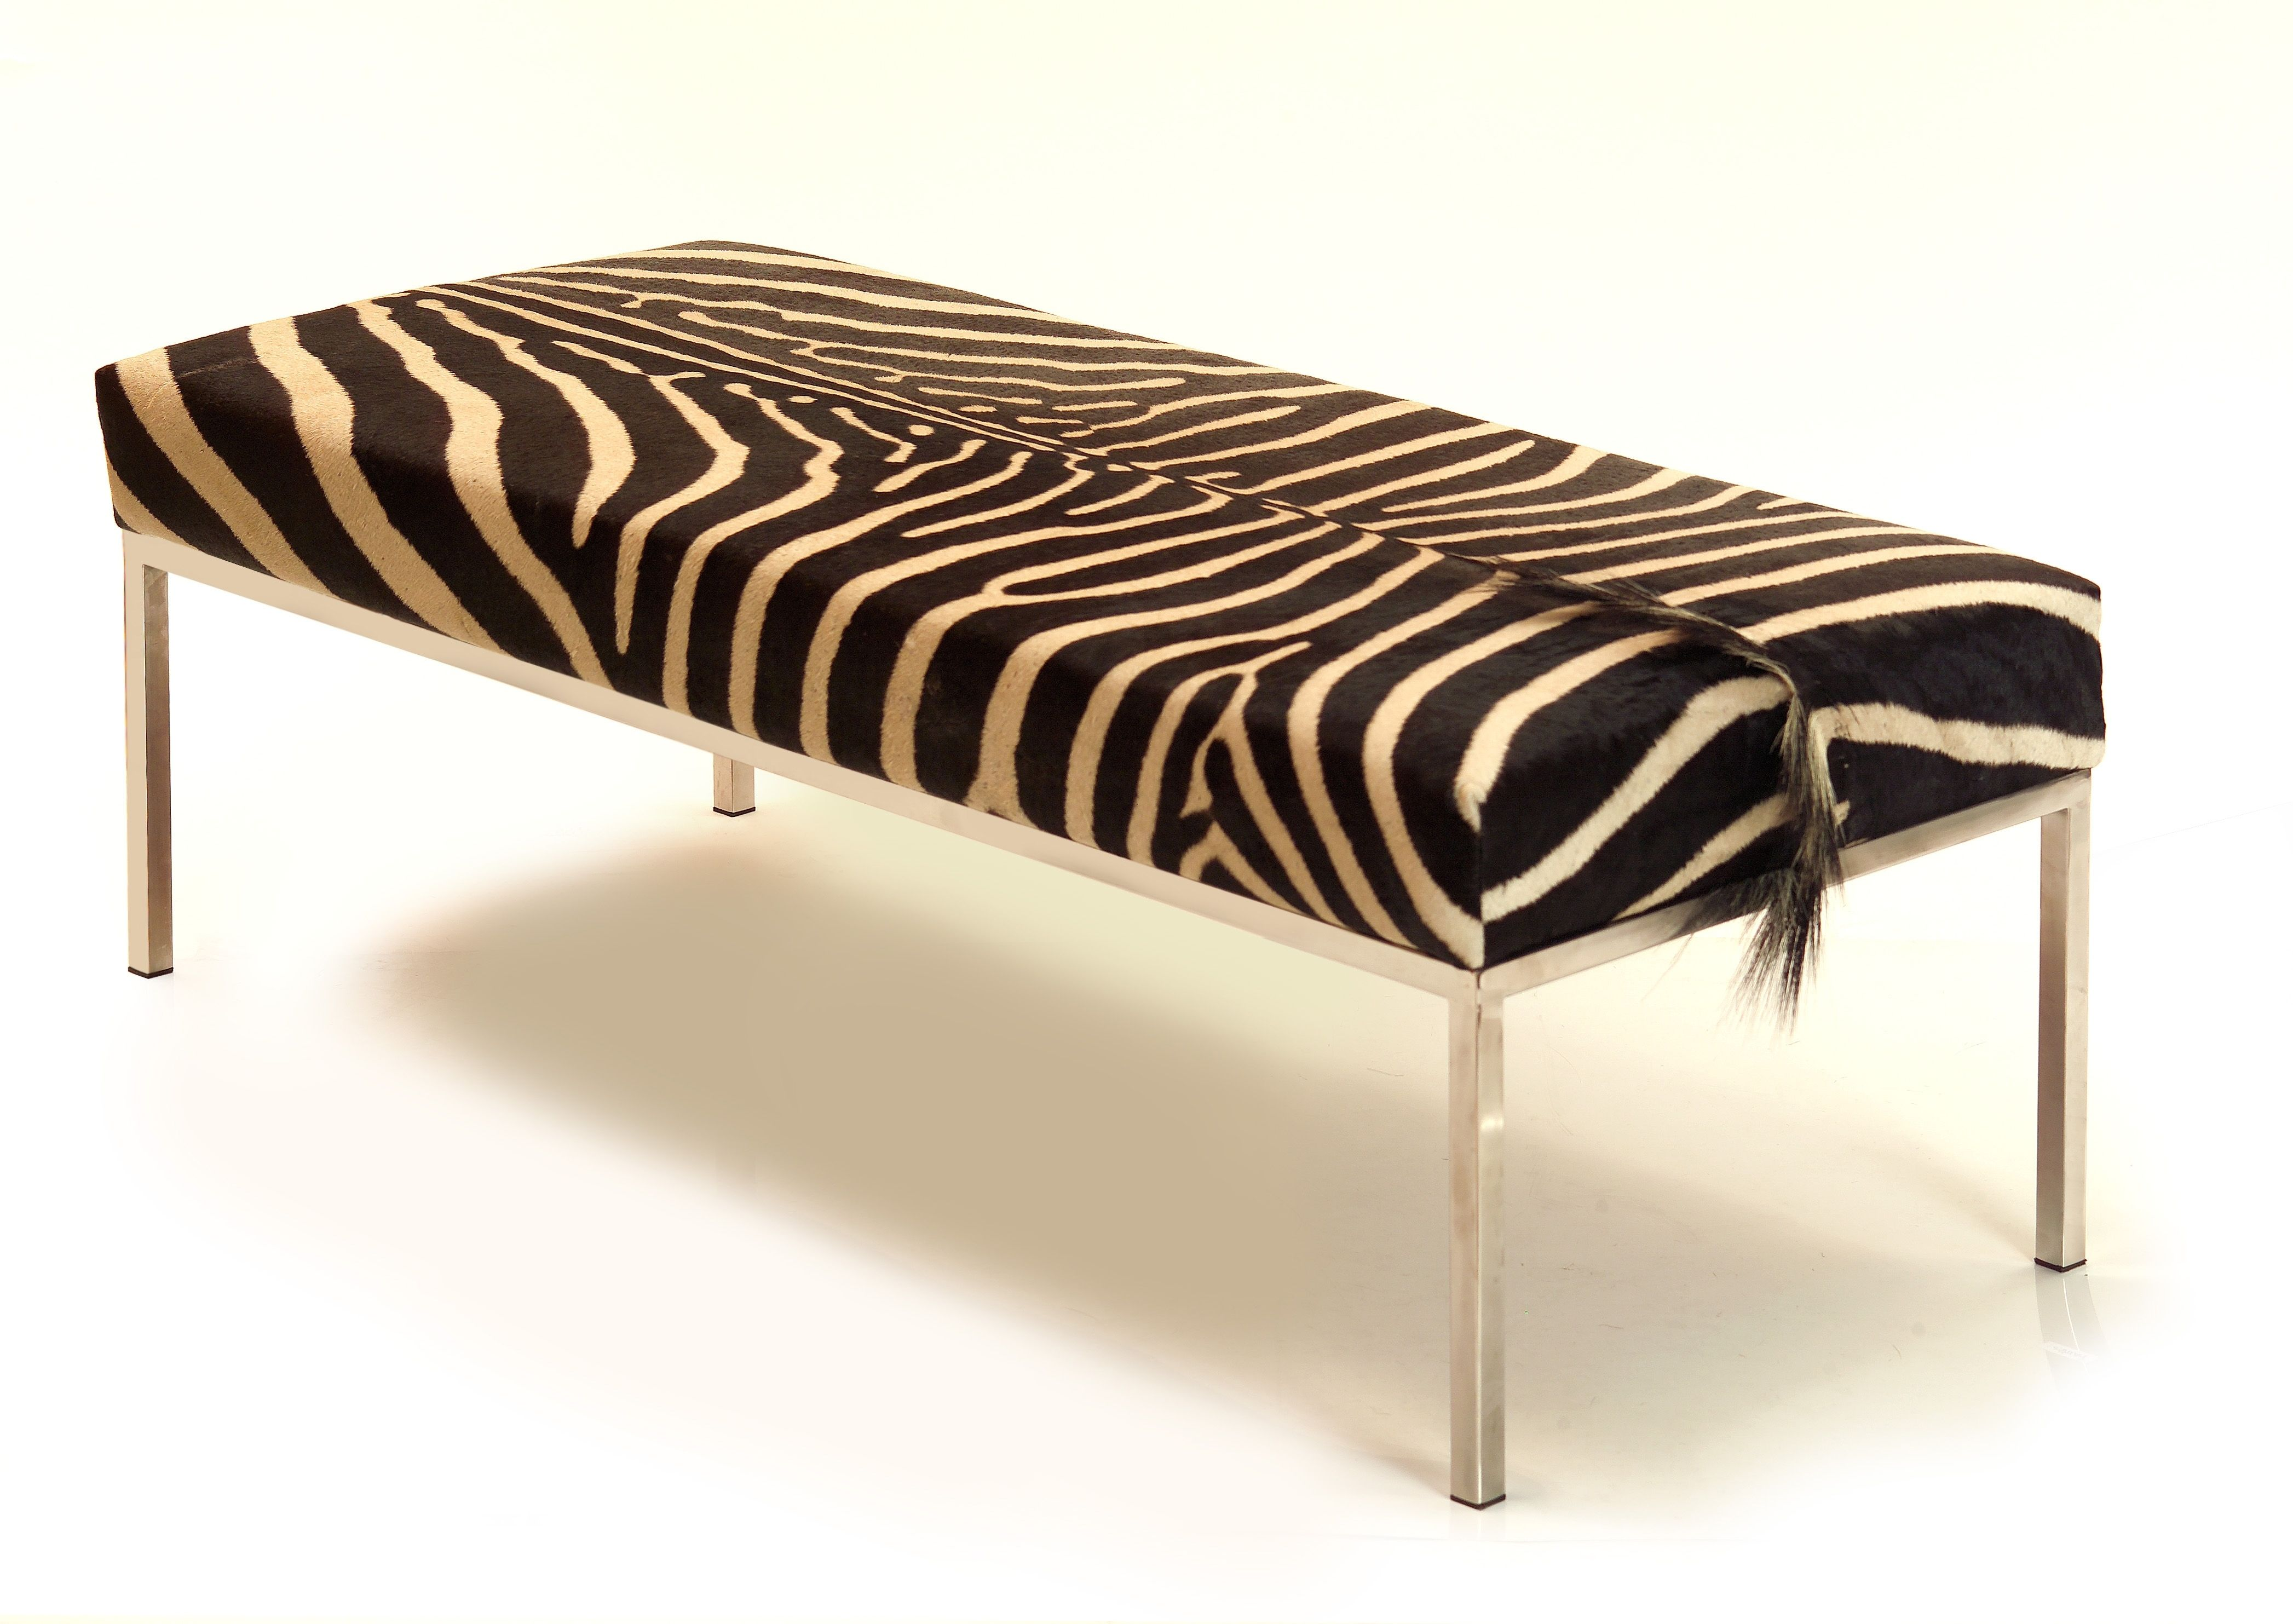 african furniture and decor. African Furniture, Decor And Lighting Contemporary Furniture A